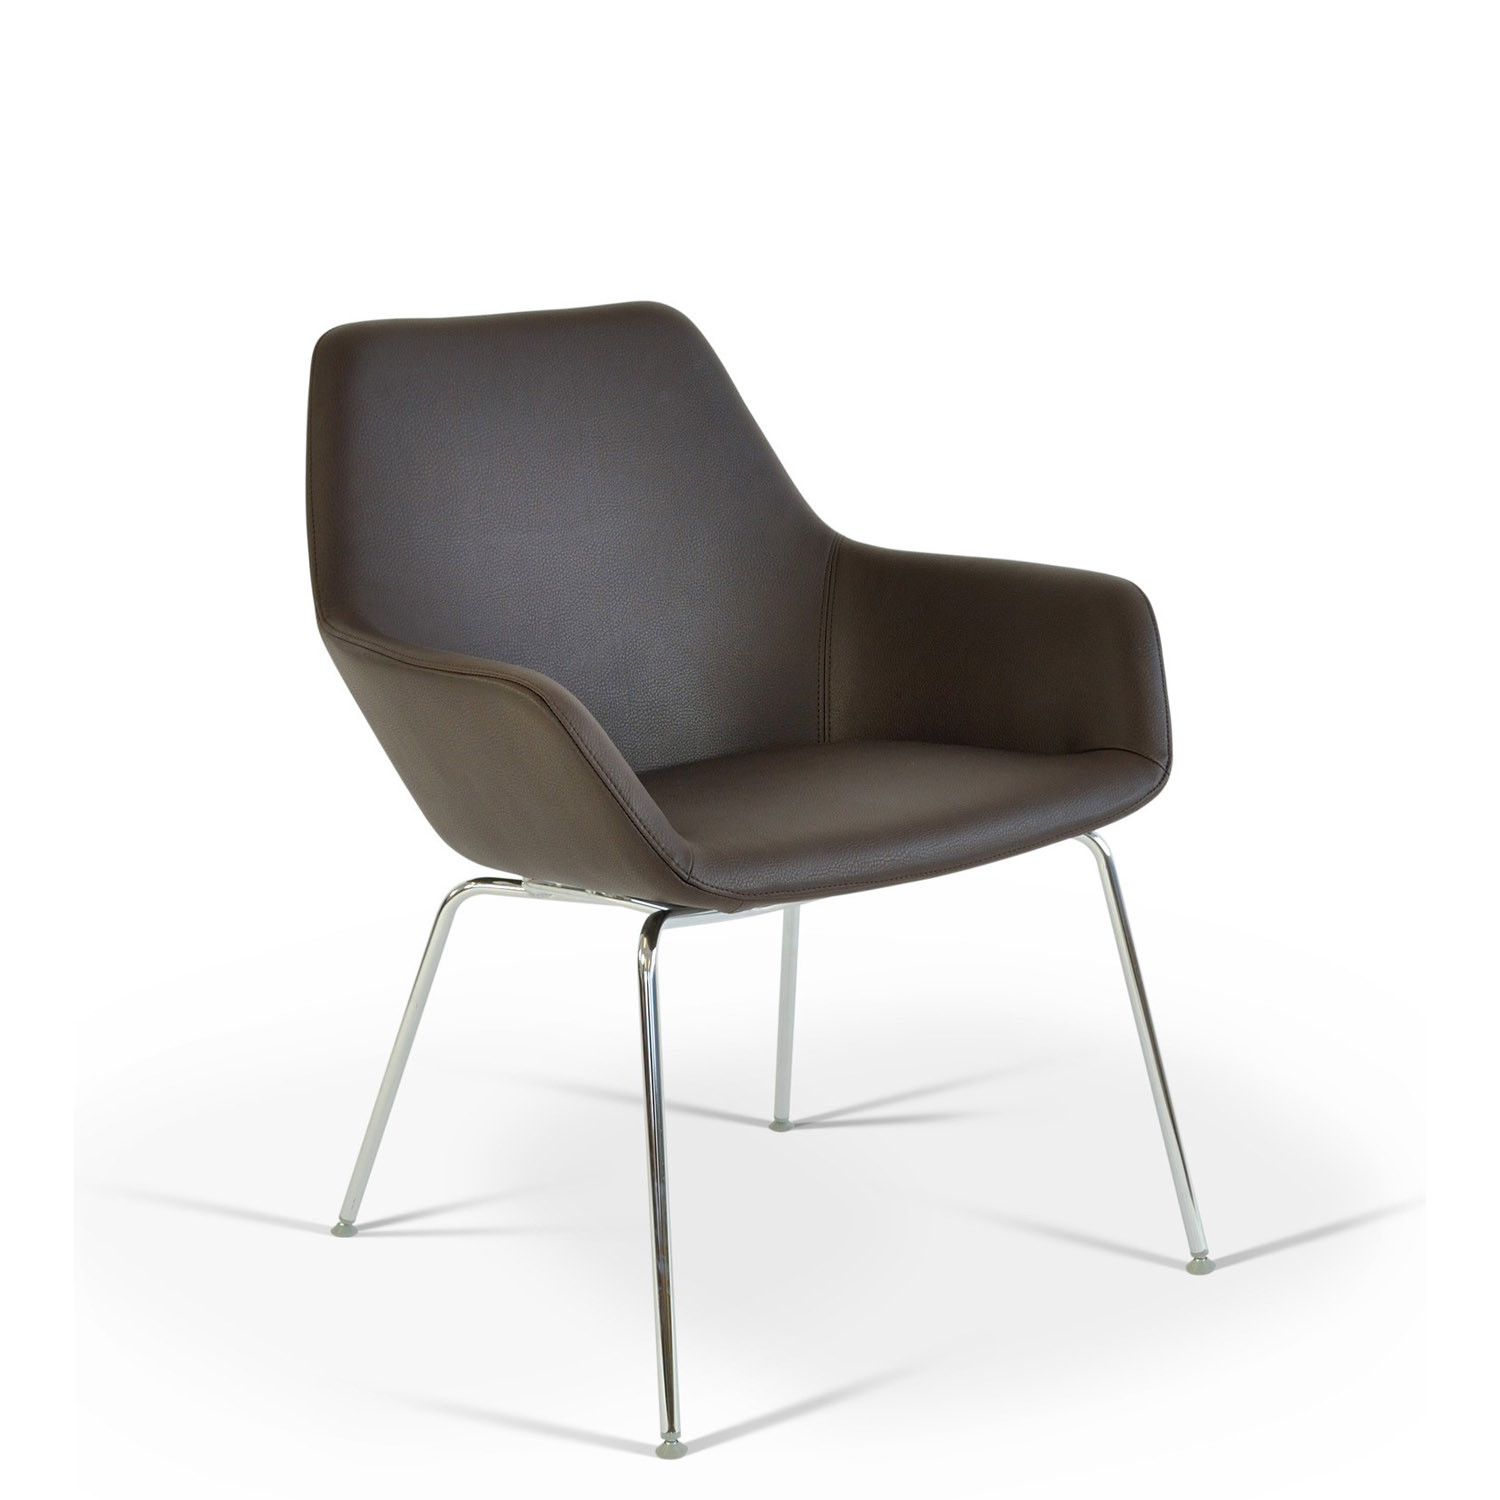 Hm86 Armchair With Four Legs